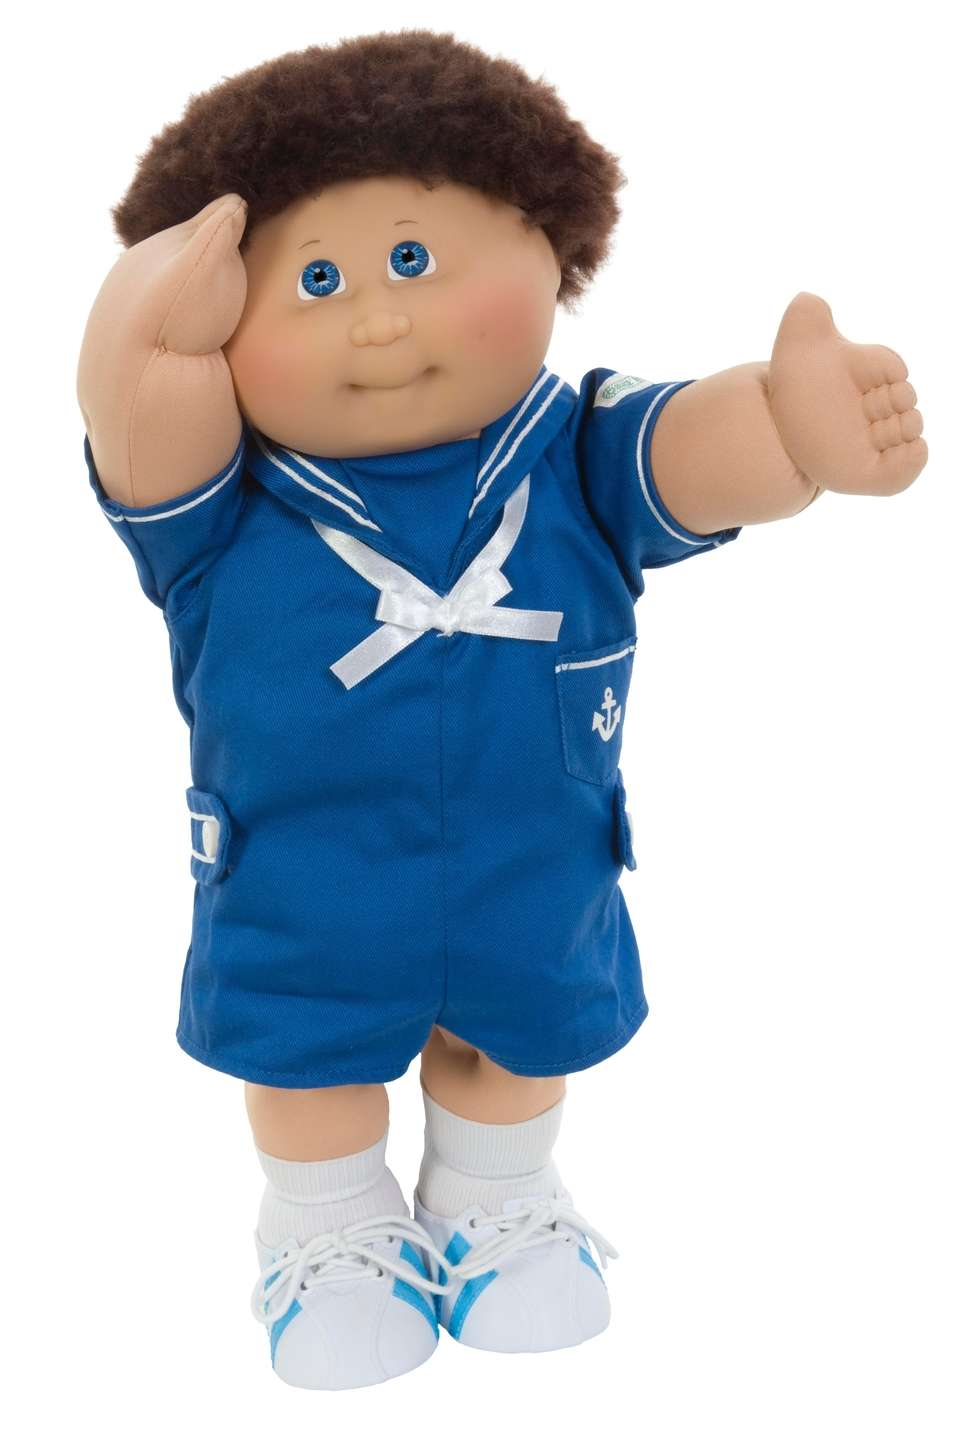 In 2001, Cabbage Patch Kids were elected by